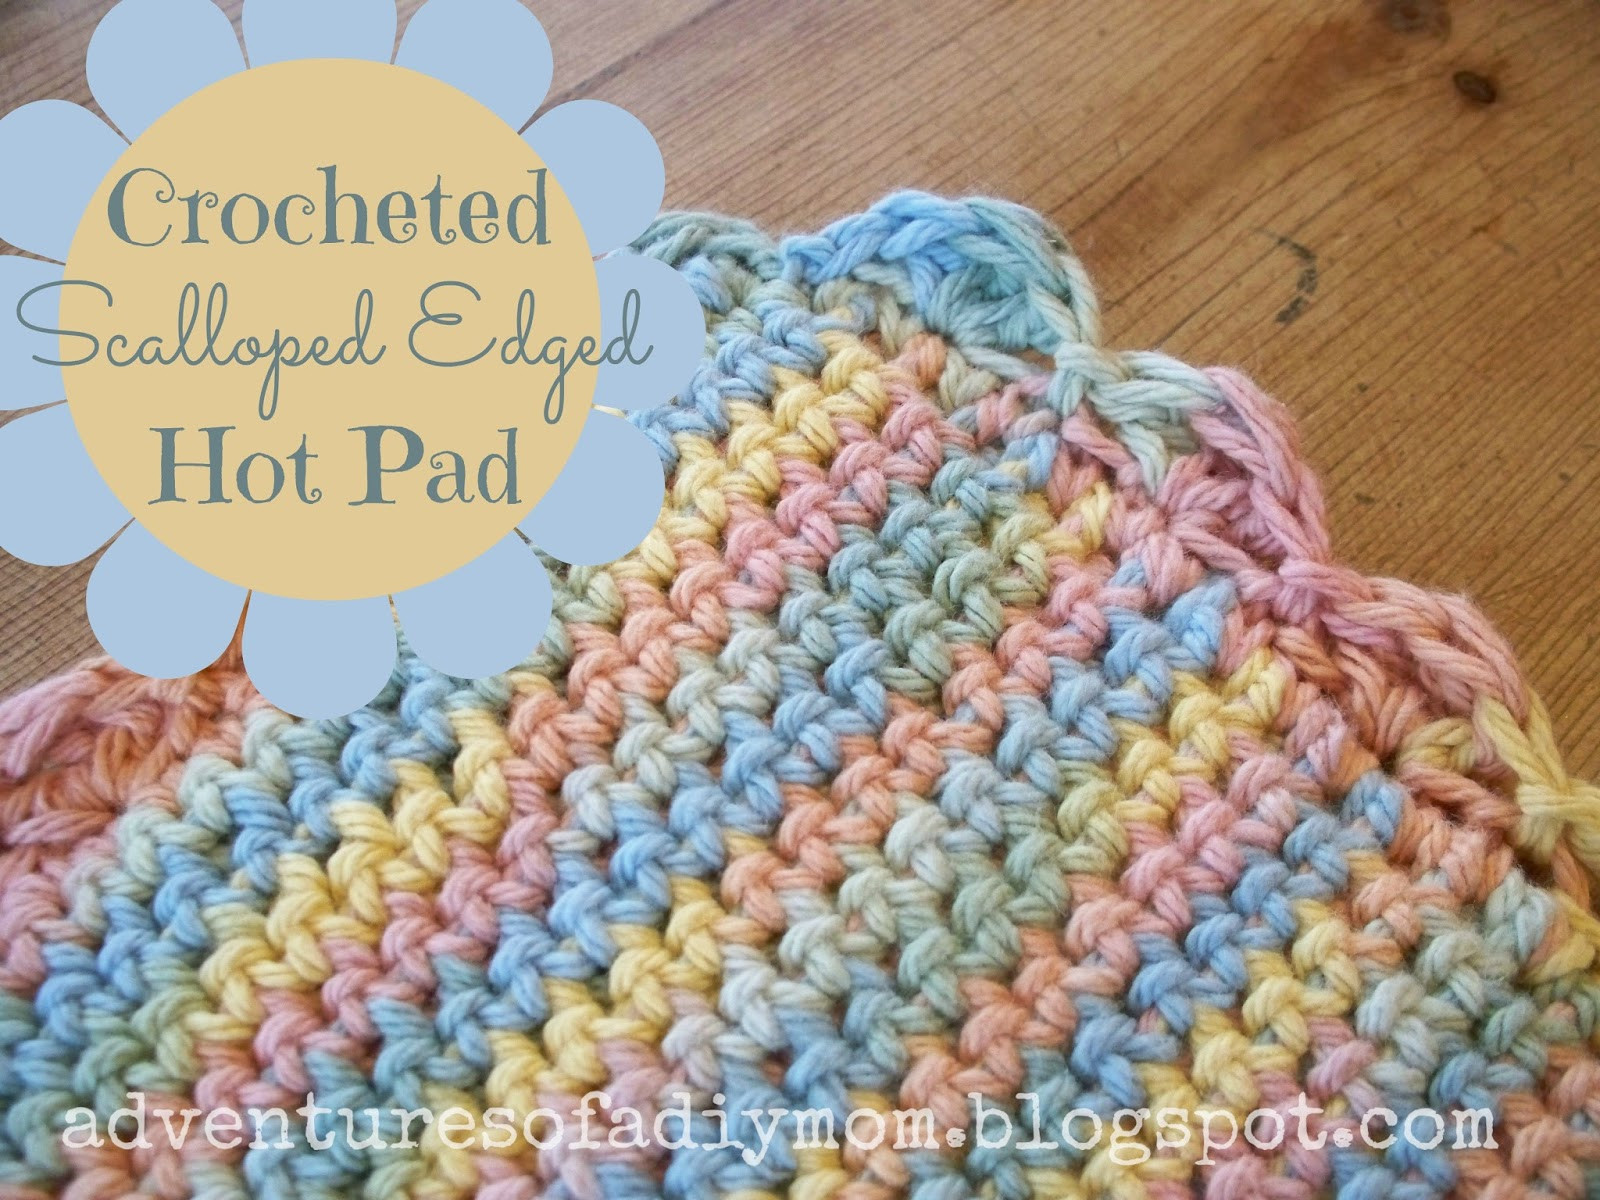 Free Crochet Hot Pad Patterns Awesome How to Crochet A Hotpad Super Easy Version Adventures Of Beautiful 48 Pics Free Crochet Hot Pad Patterns